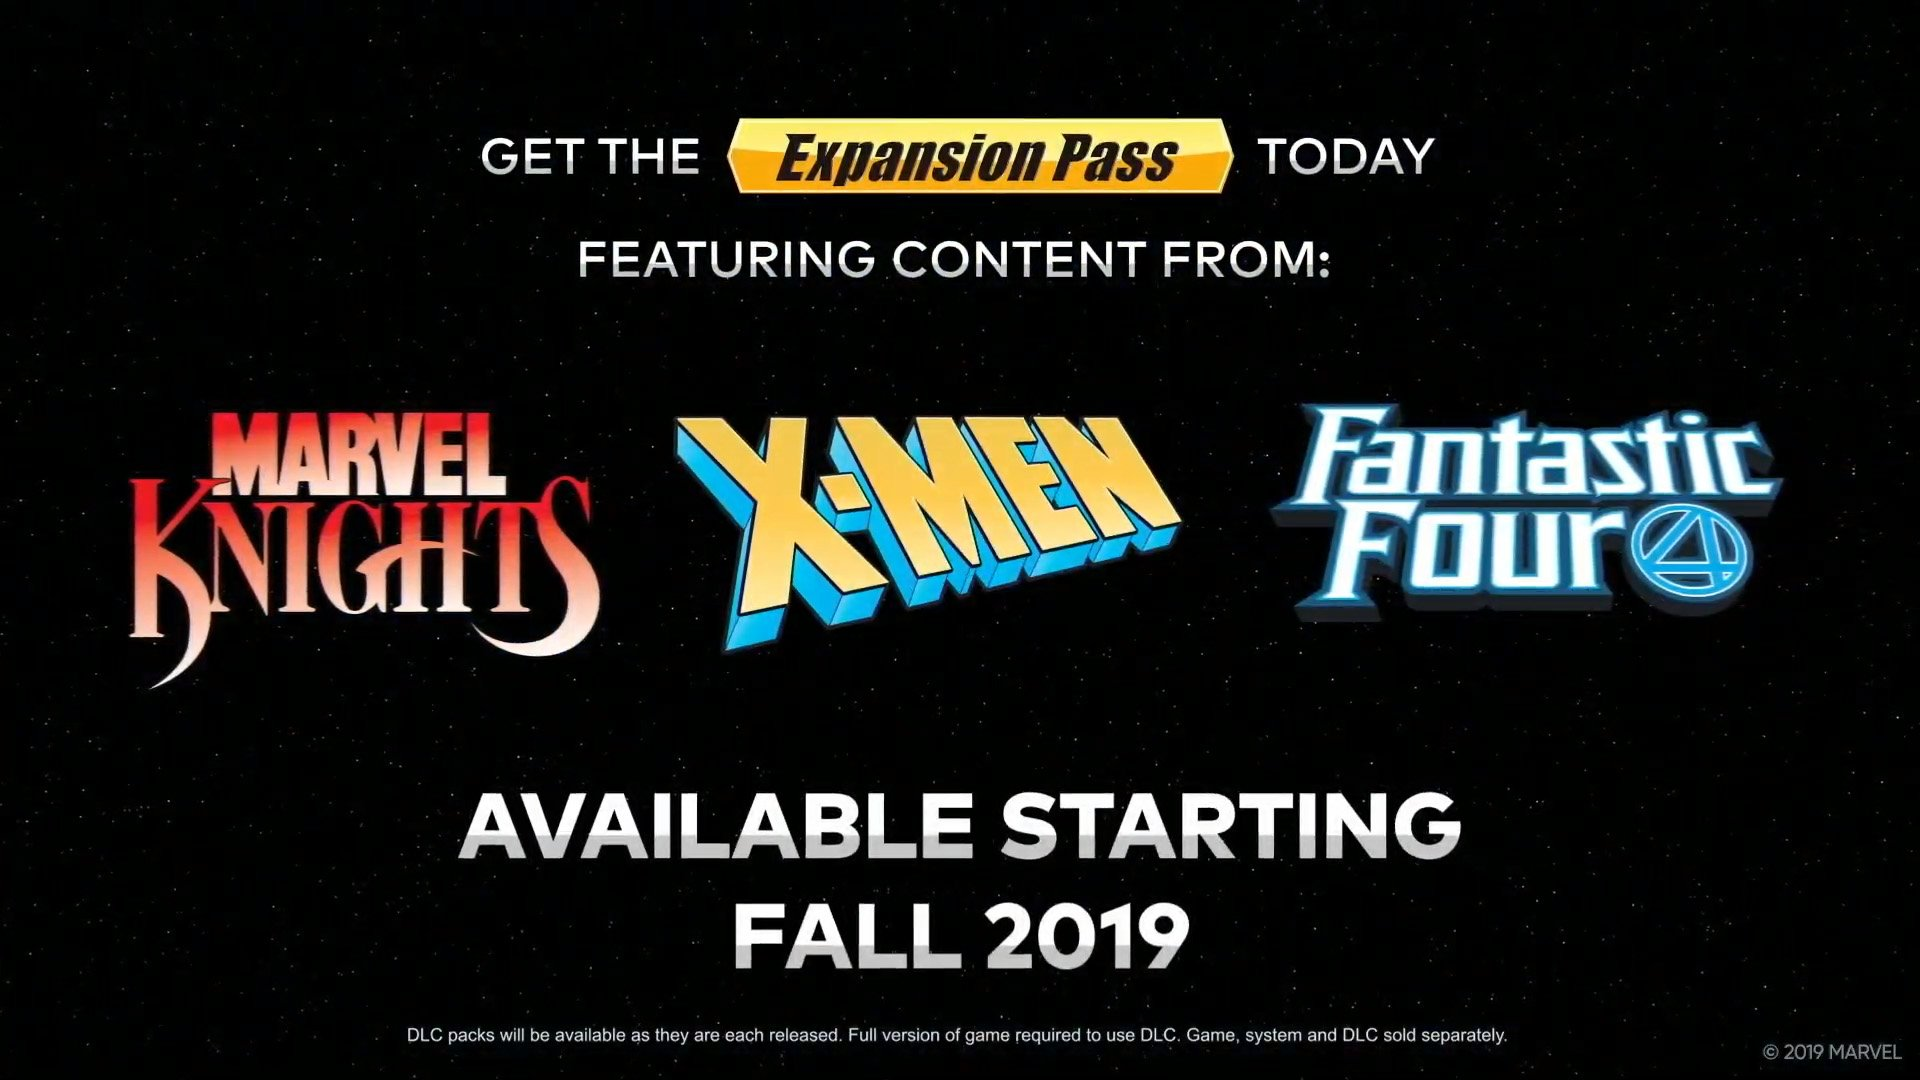 Marvel Ultimate Alliance 3 gives an insight with Expansion Pass